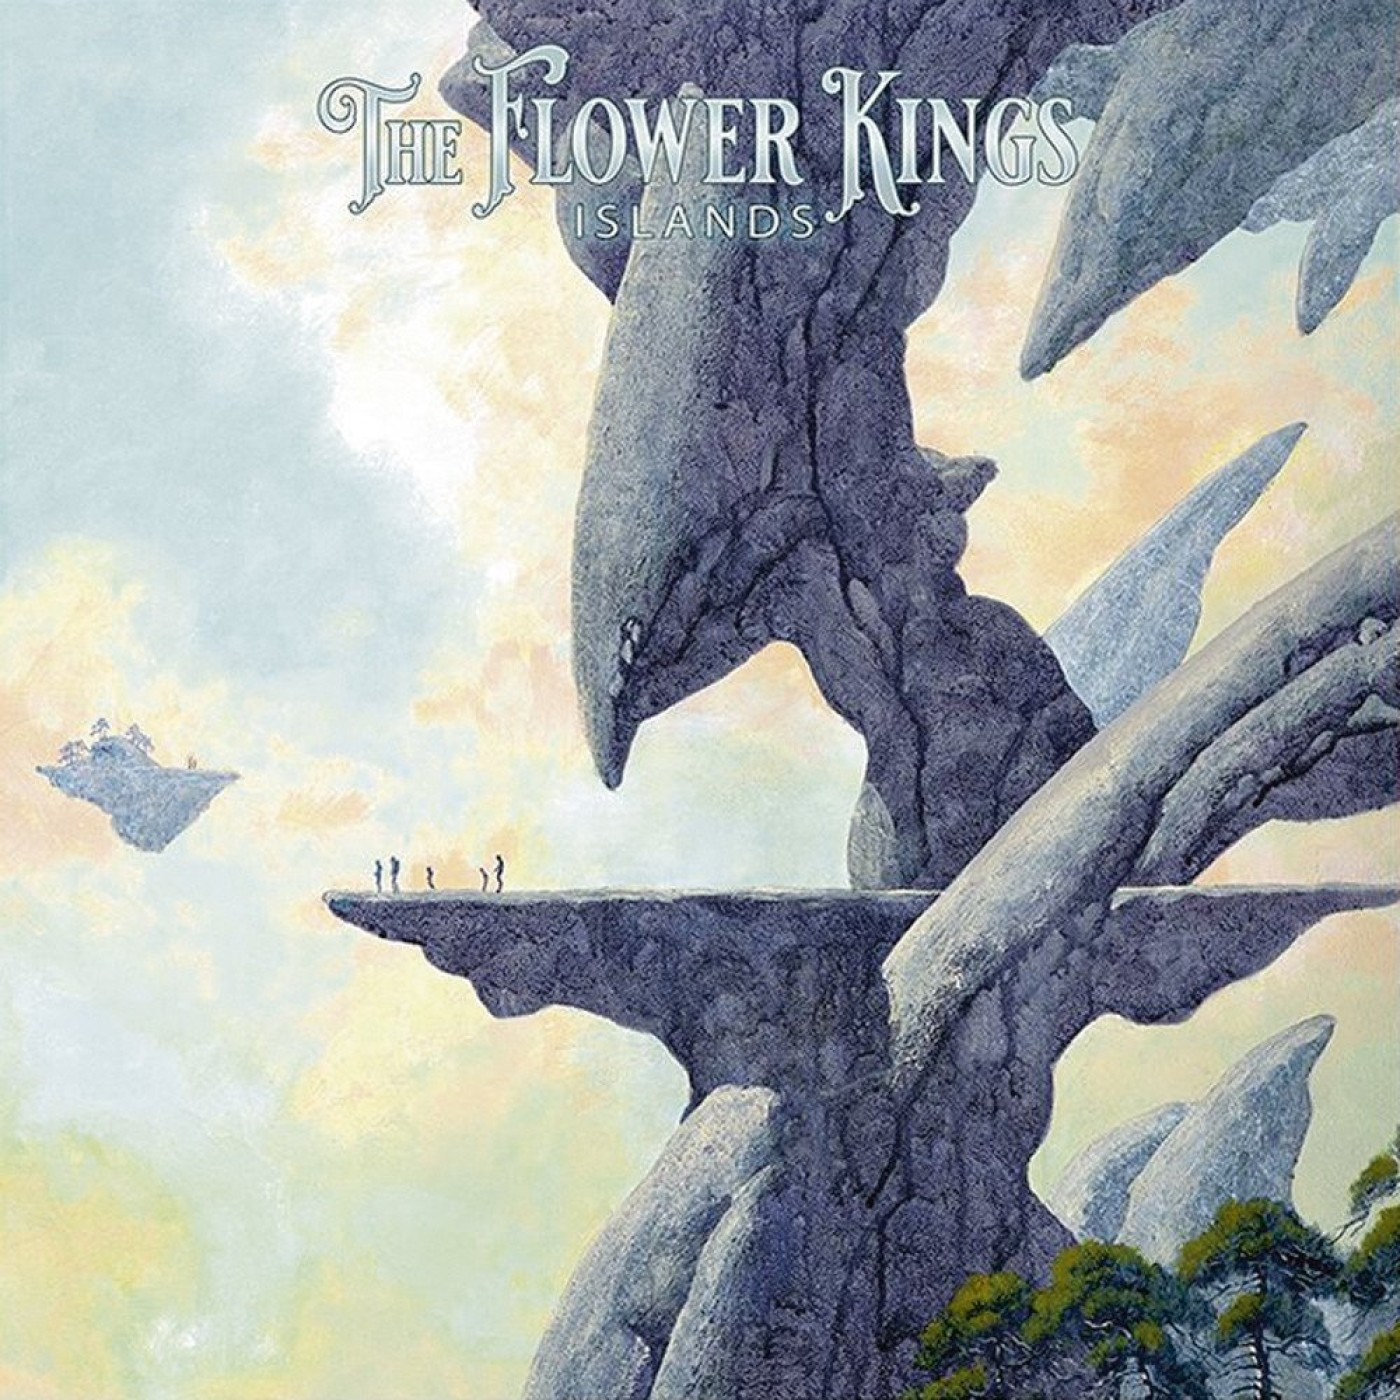 213Rock Podcast Harrag Melodica Interview with Roine Stolt of Flower Kings New album Islands Out 30th